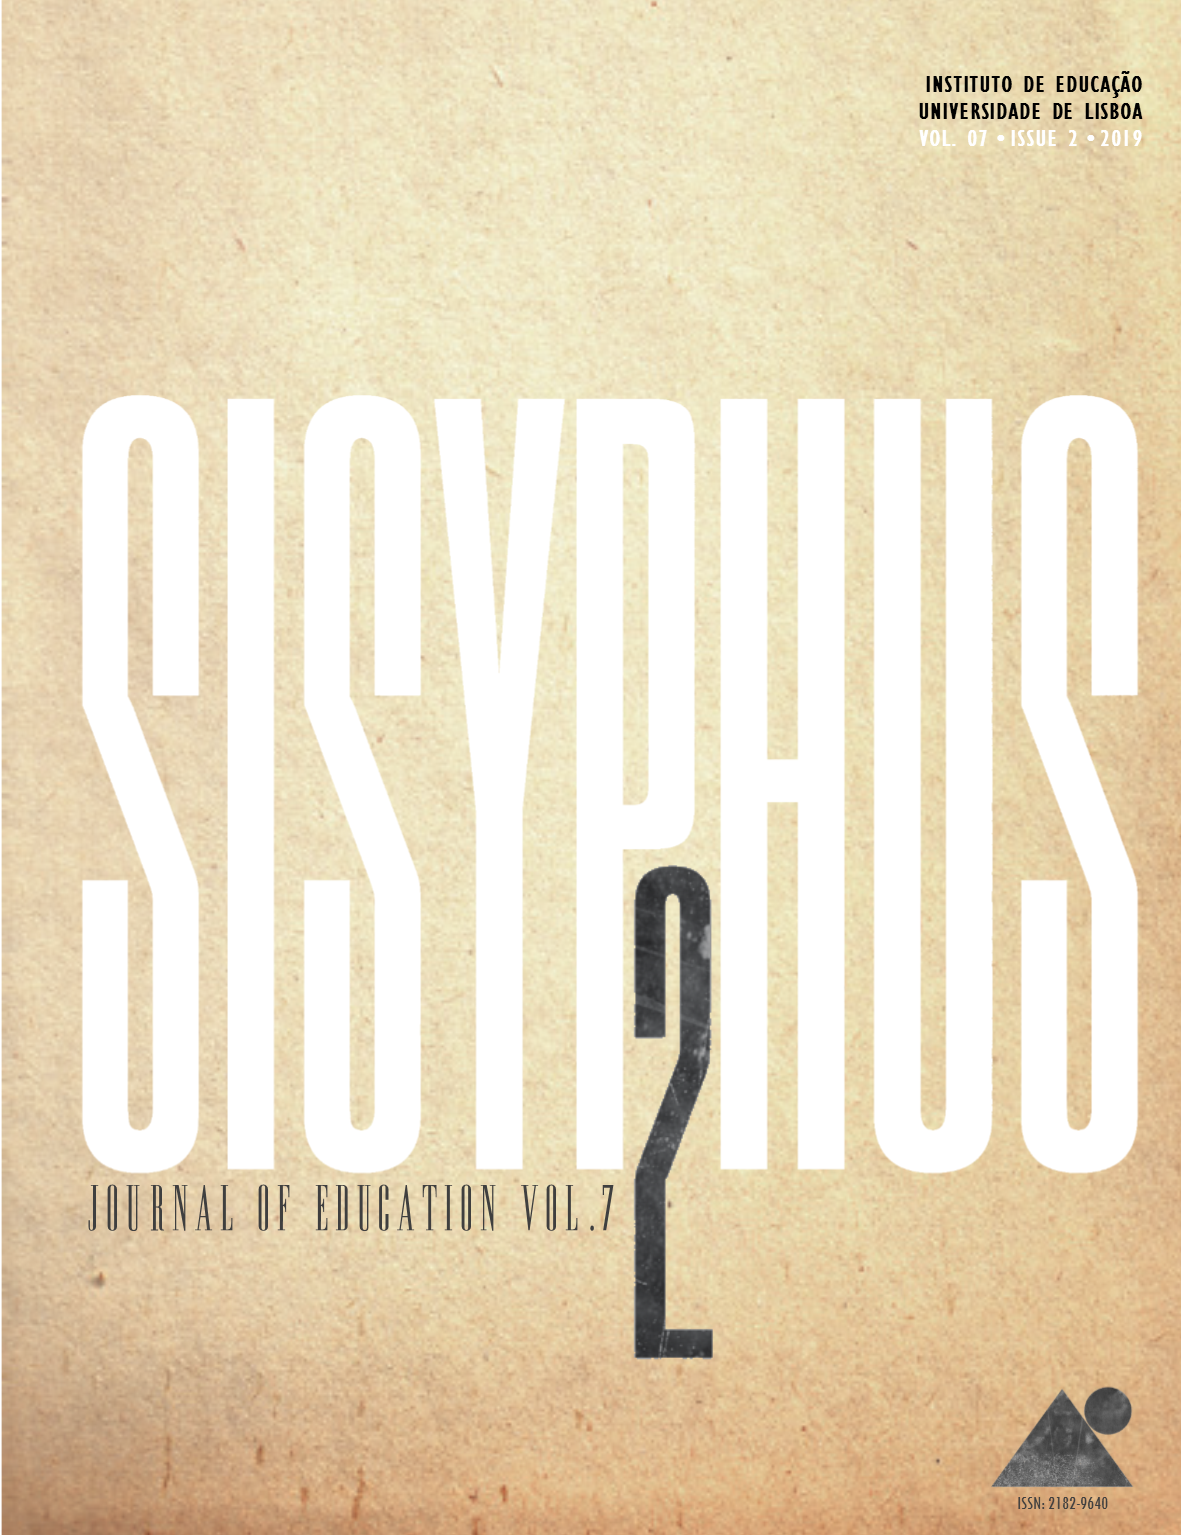 Young Sisyphus Tries To Move World >> Archives Sisyphus Journal Of Education